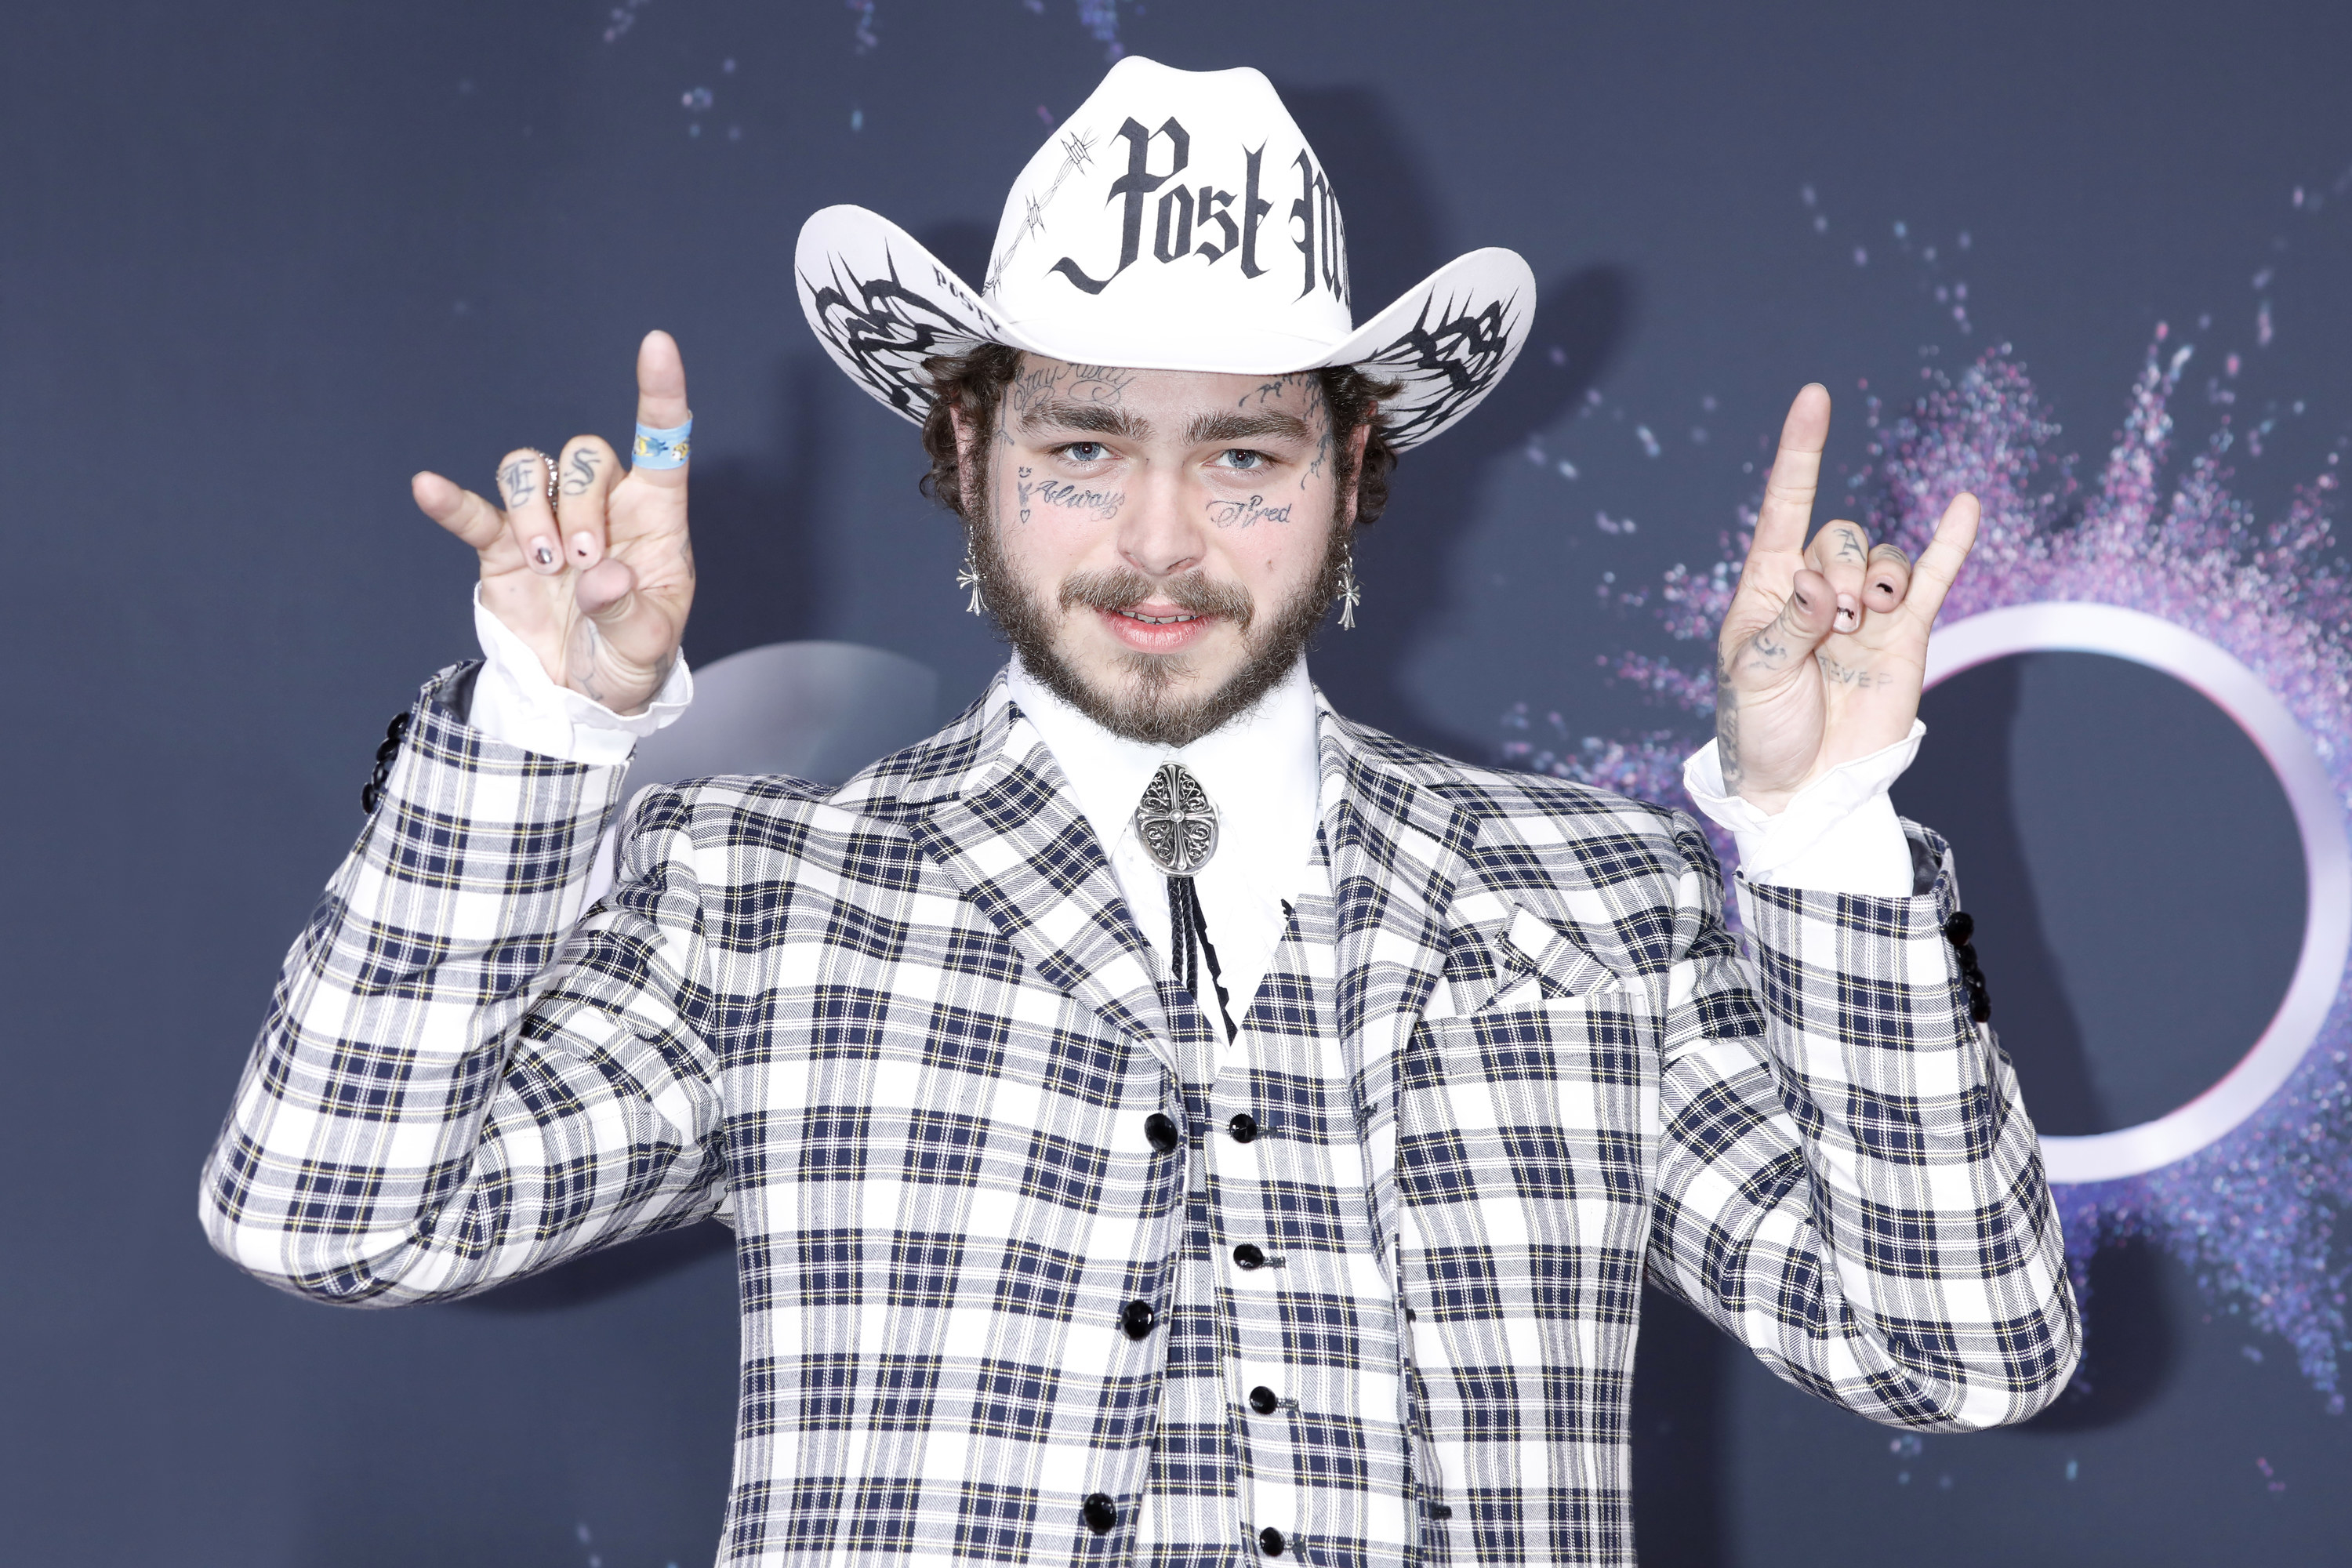 Post Malone in a plaid suit and cowboy hat